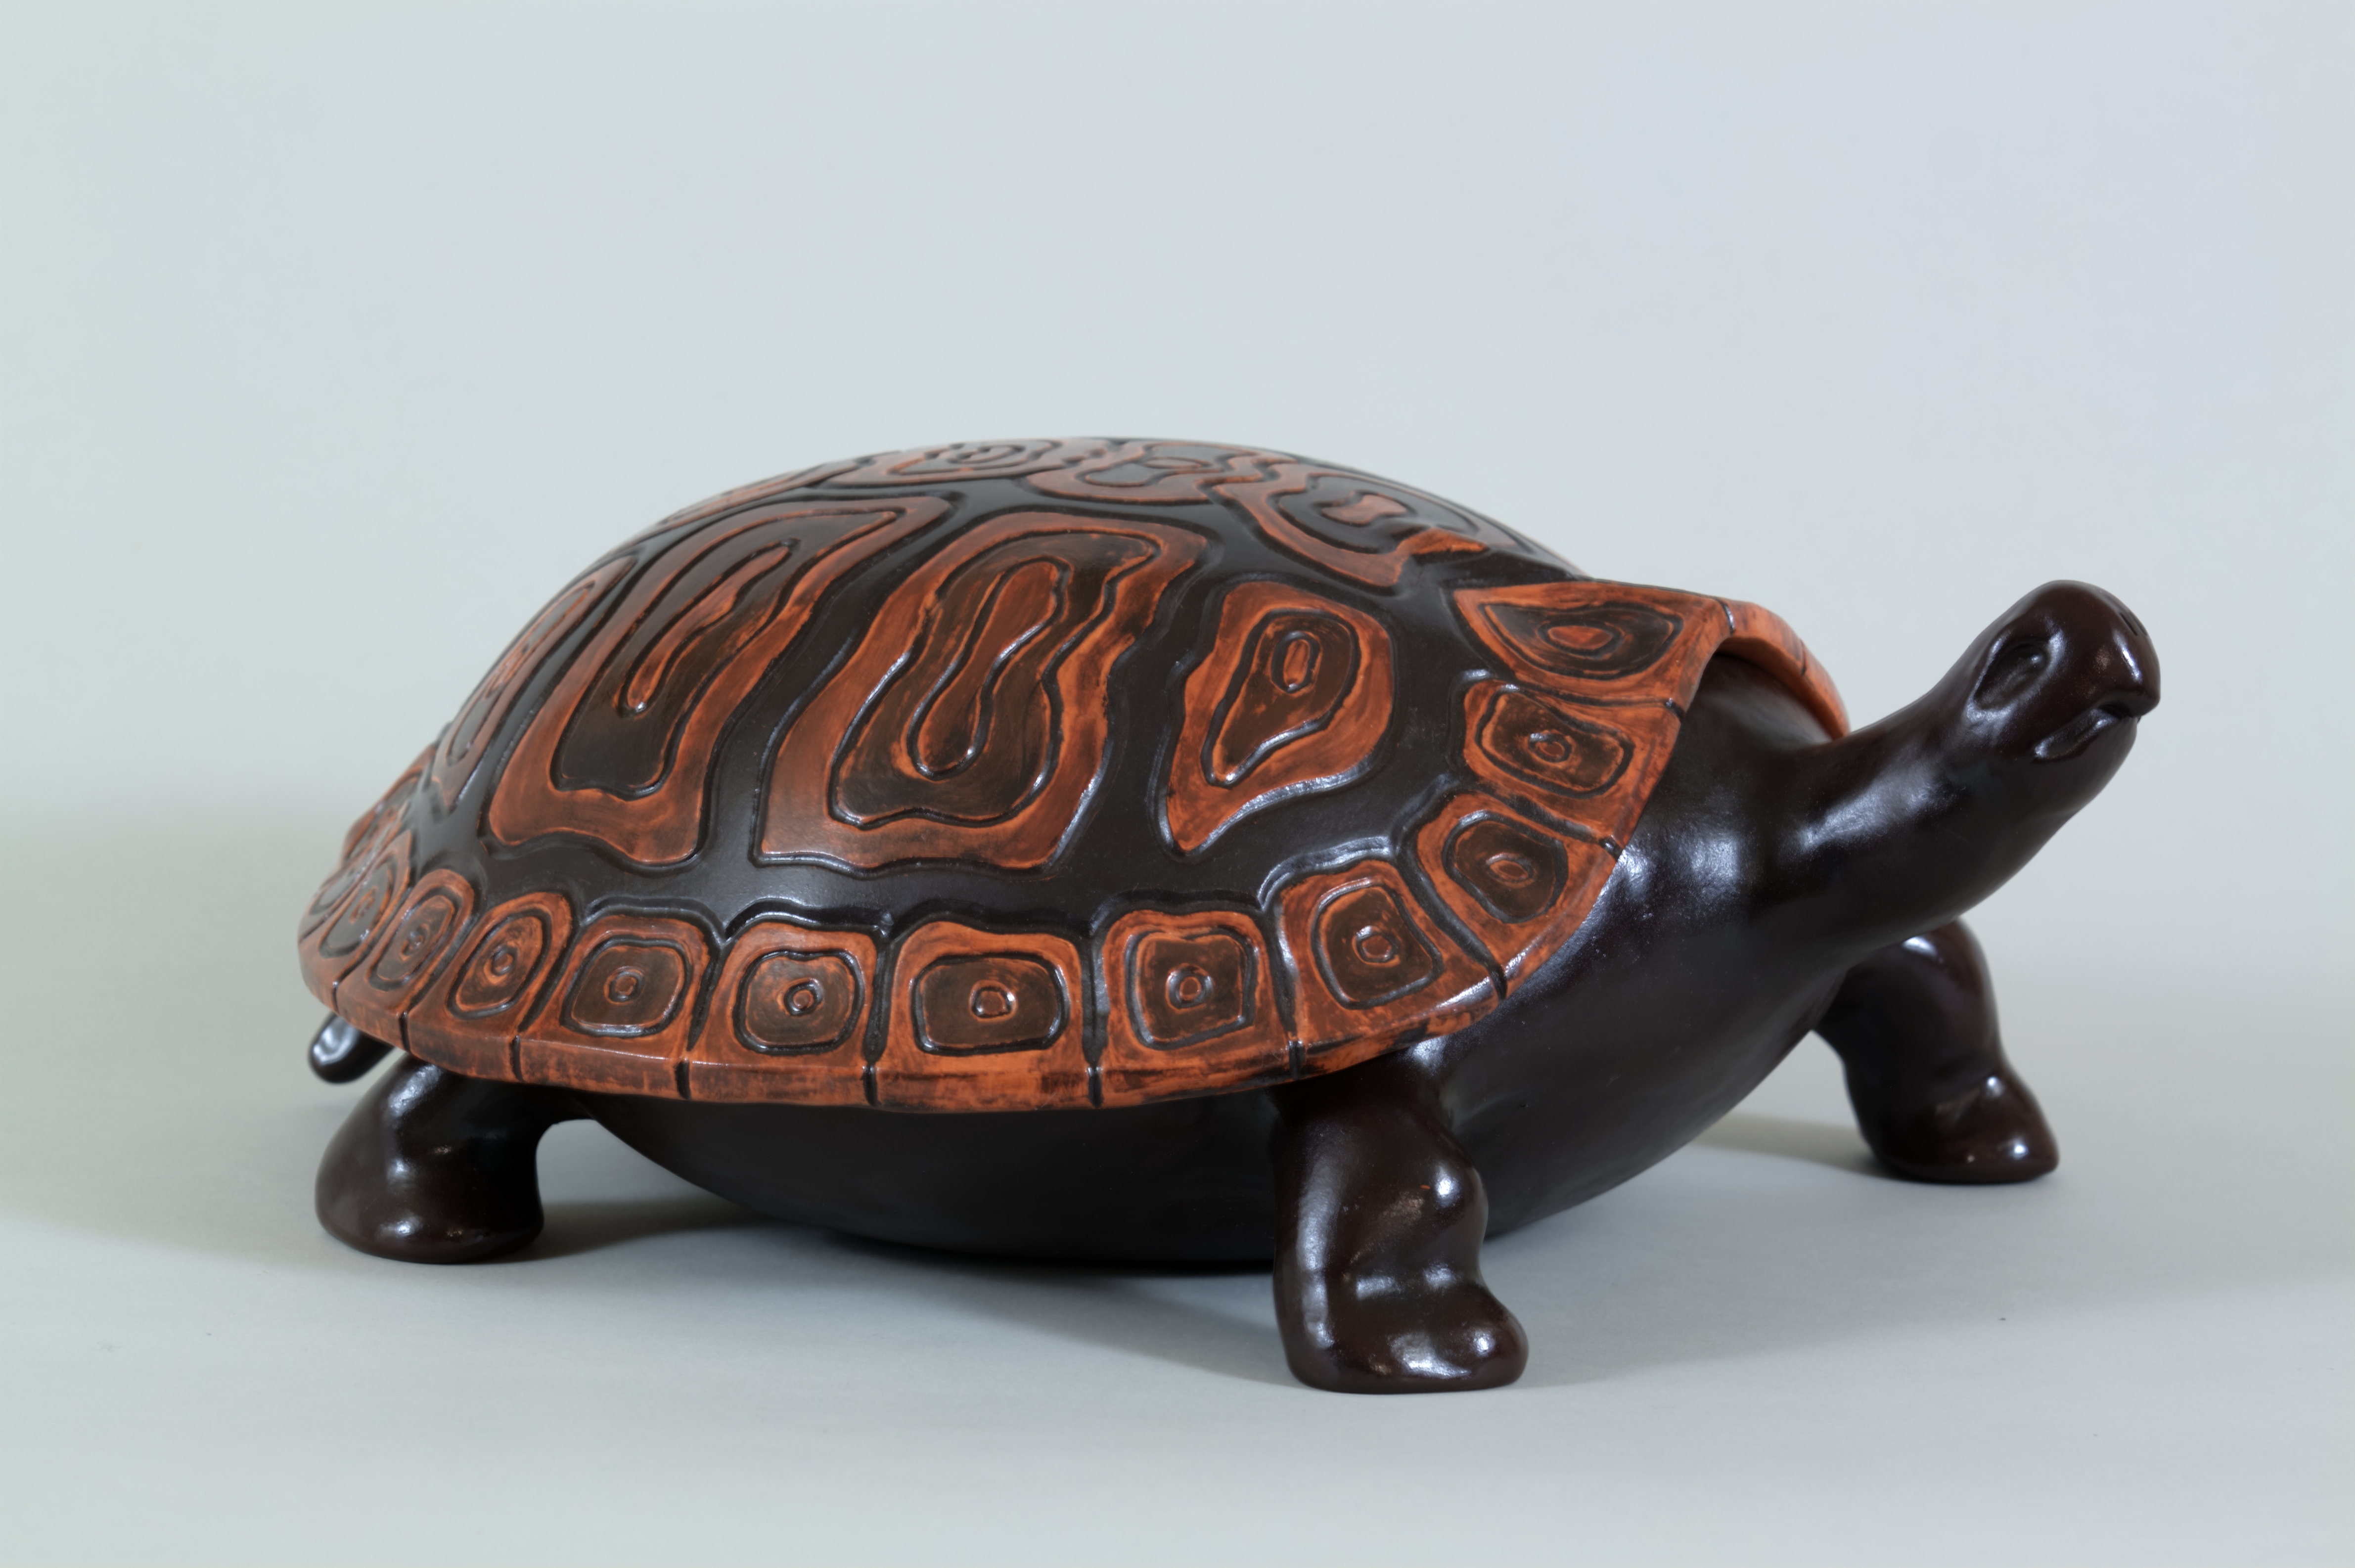 046-Turtle with removable shell